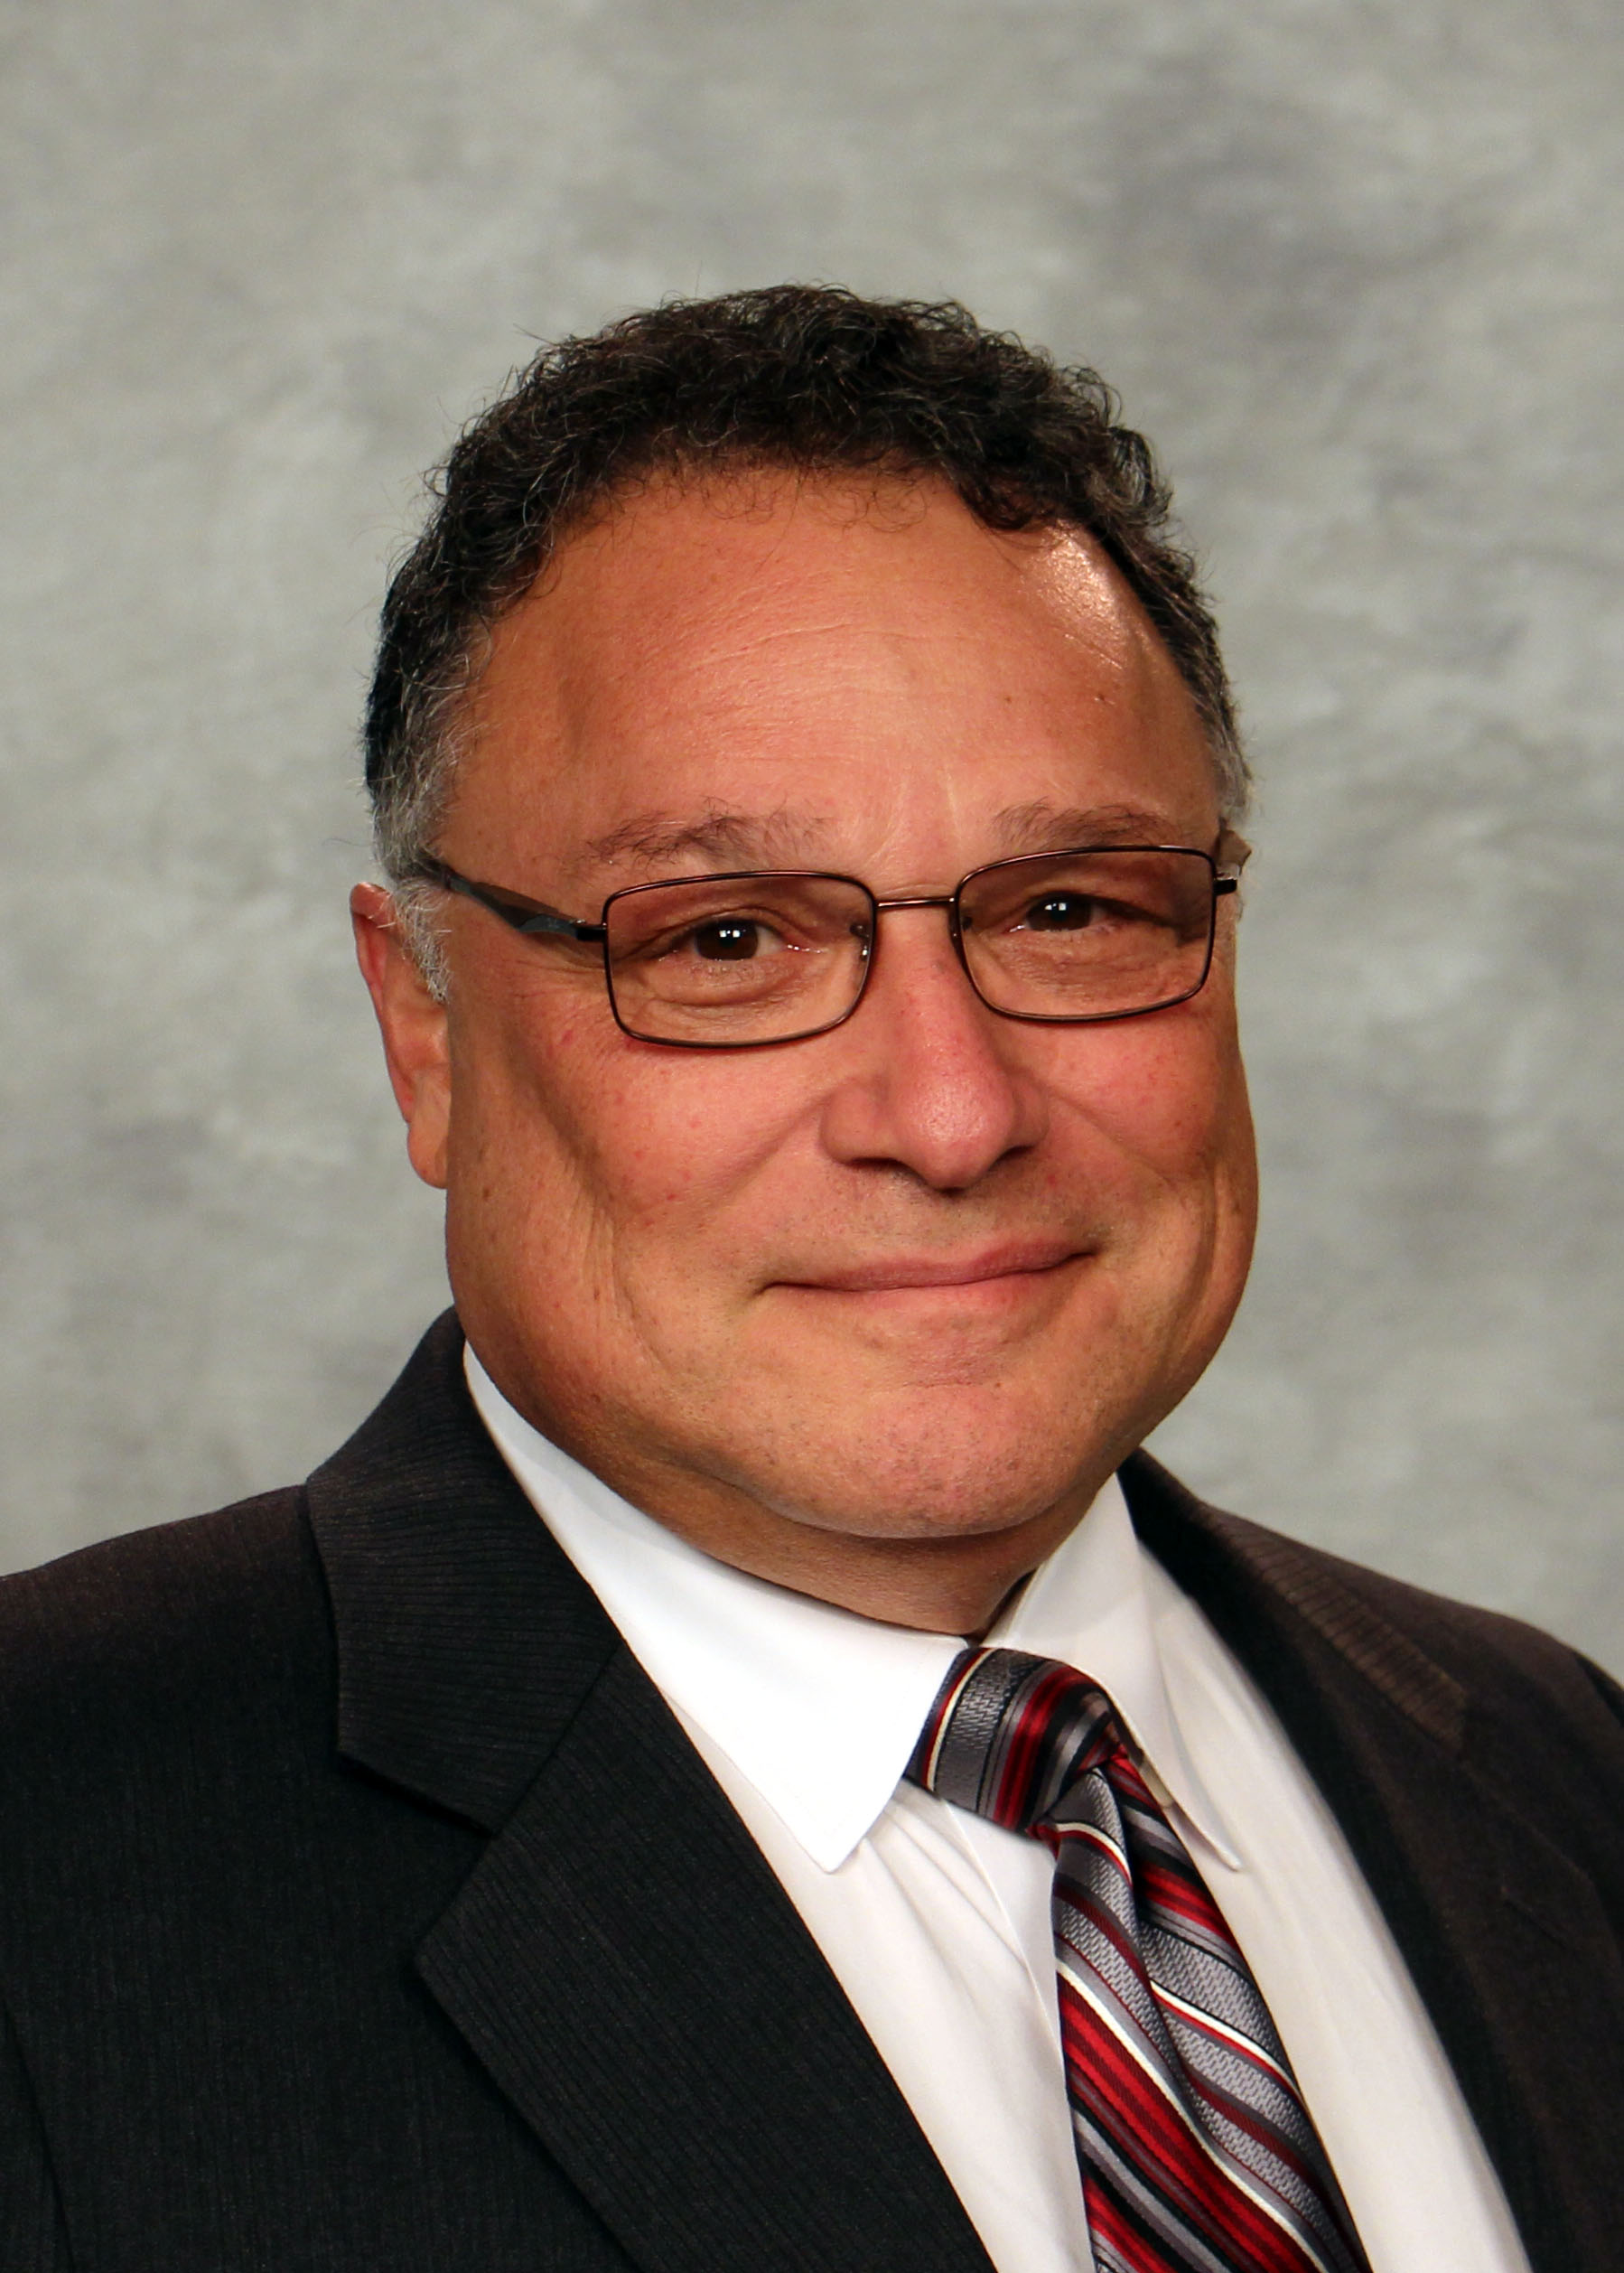 Gary Delorenzo, financial advisor Stony Brook NY